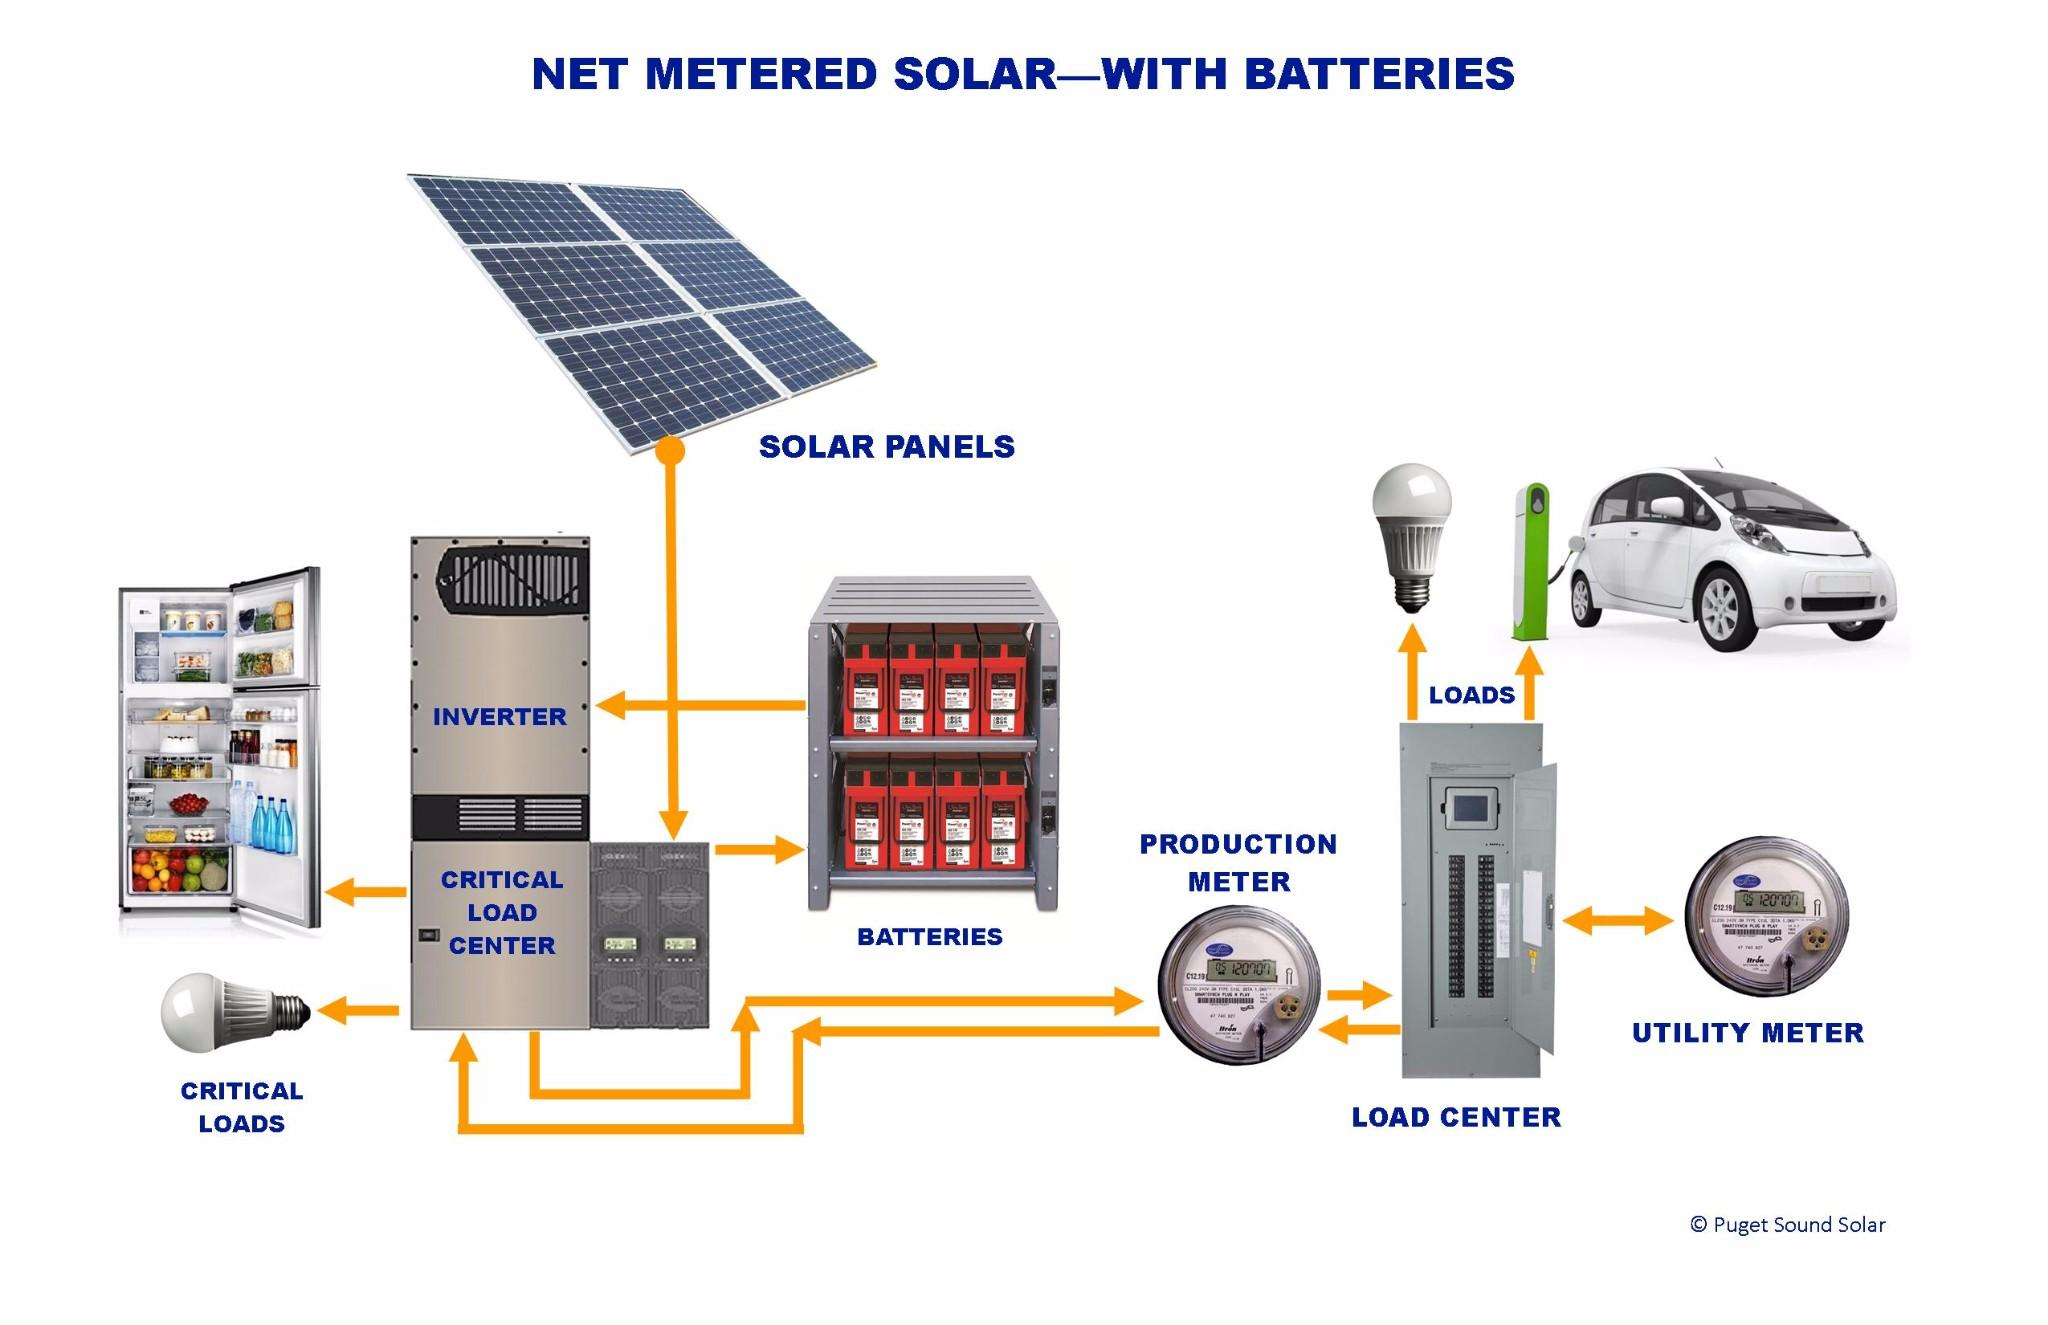 Solar Pv Systems Backup Power Ups Systems: South Sound Solar, Inc